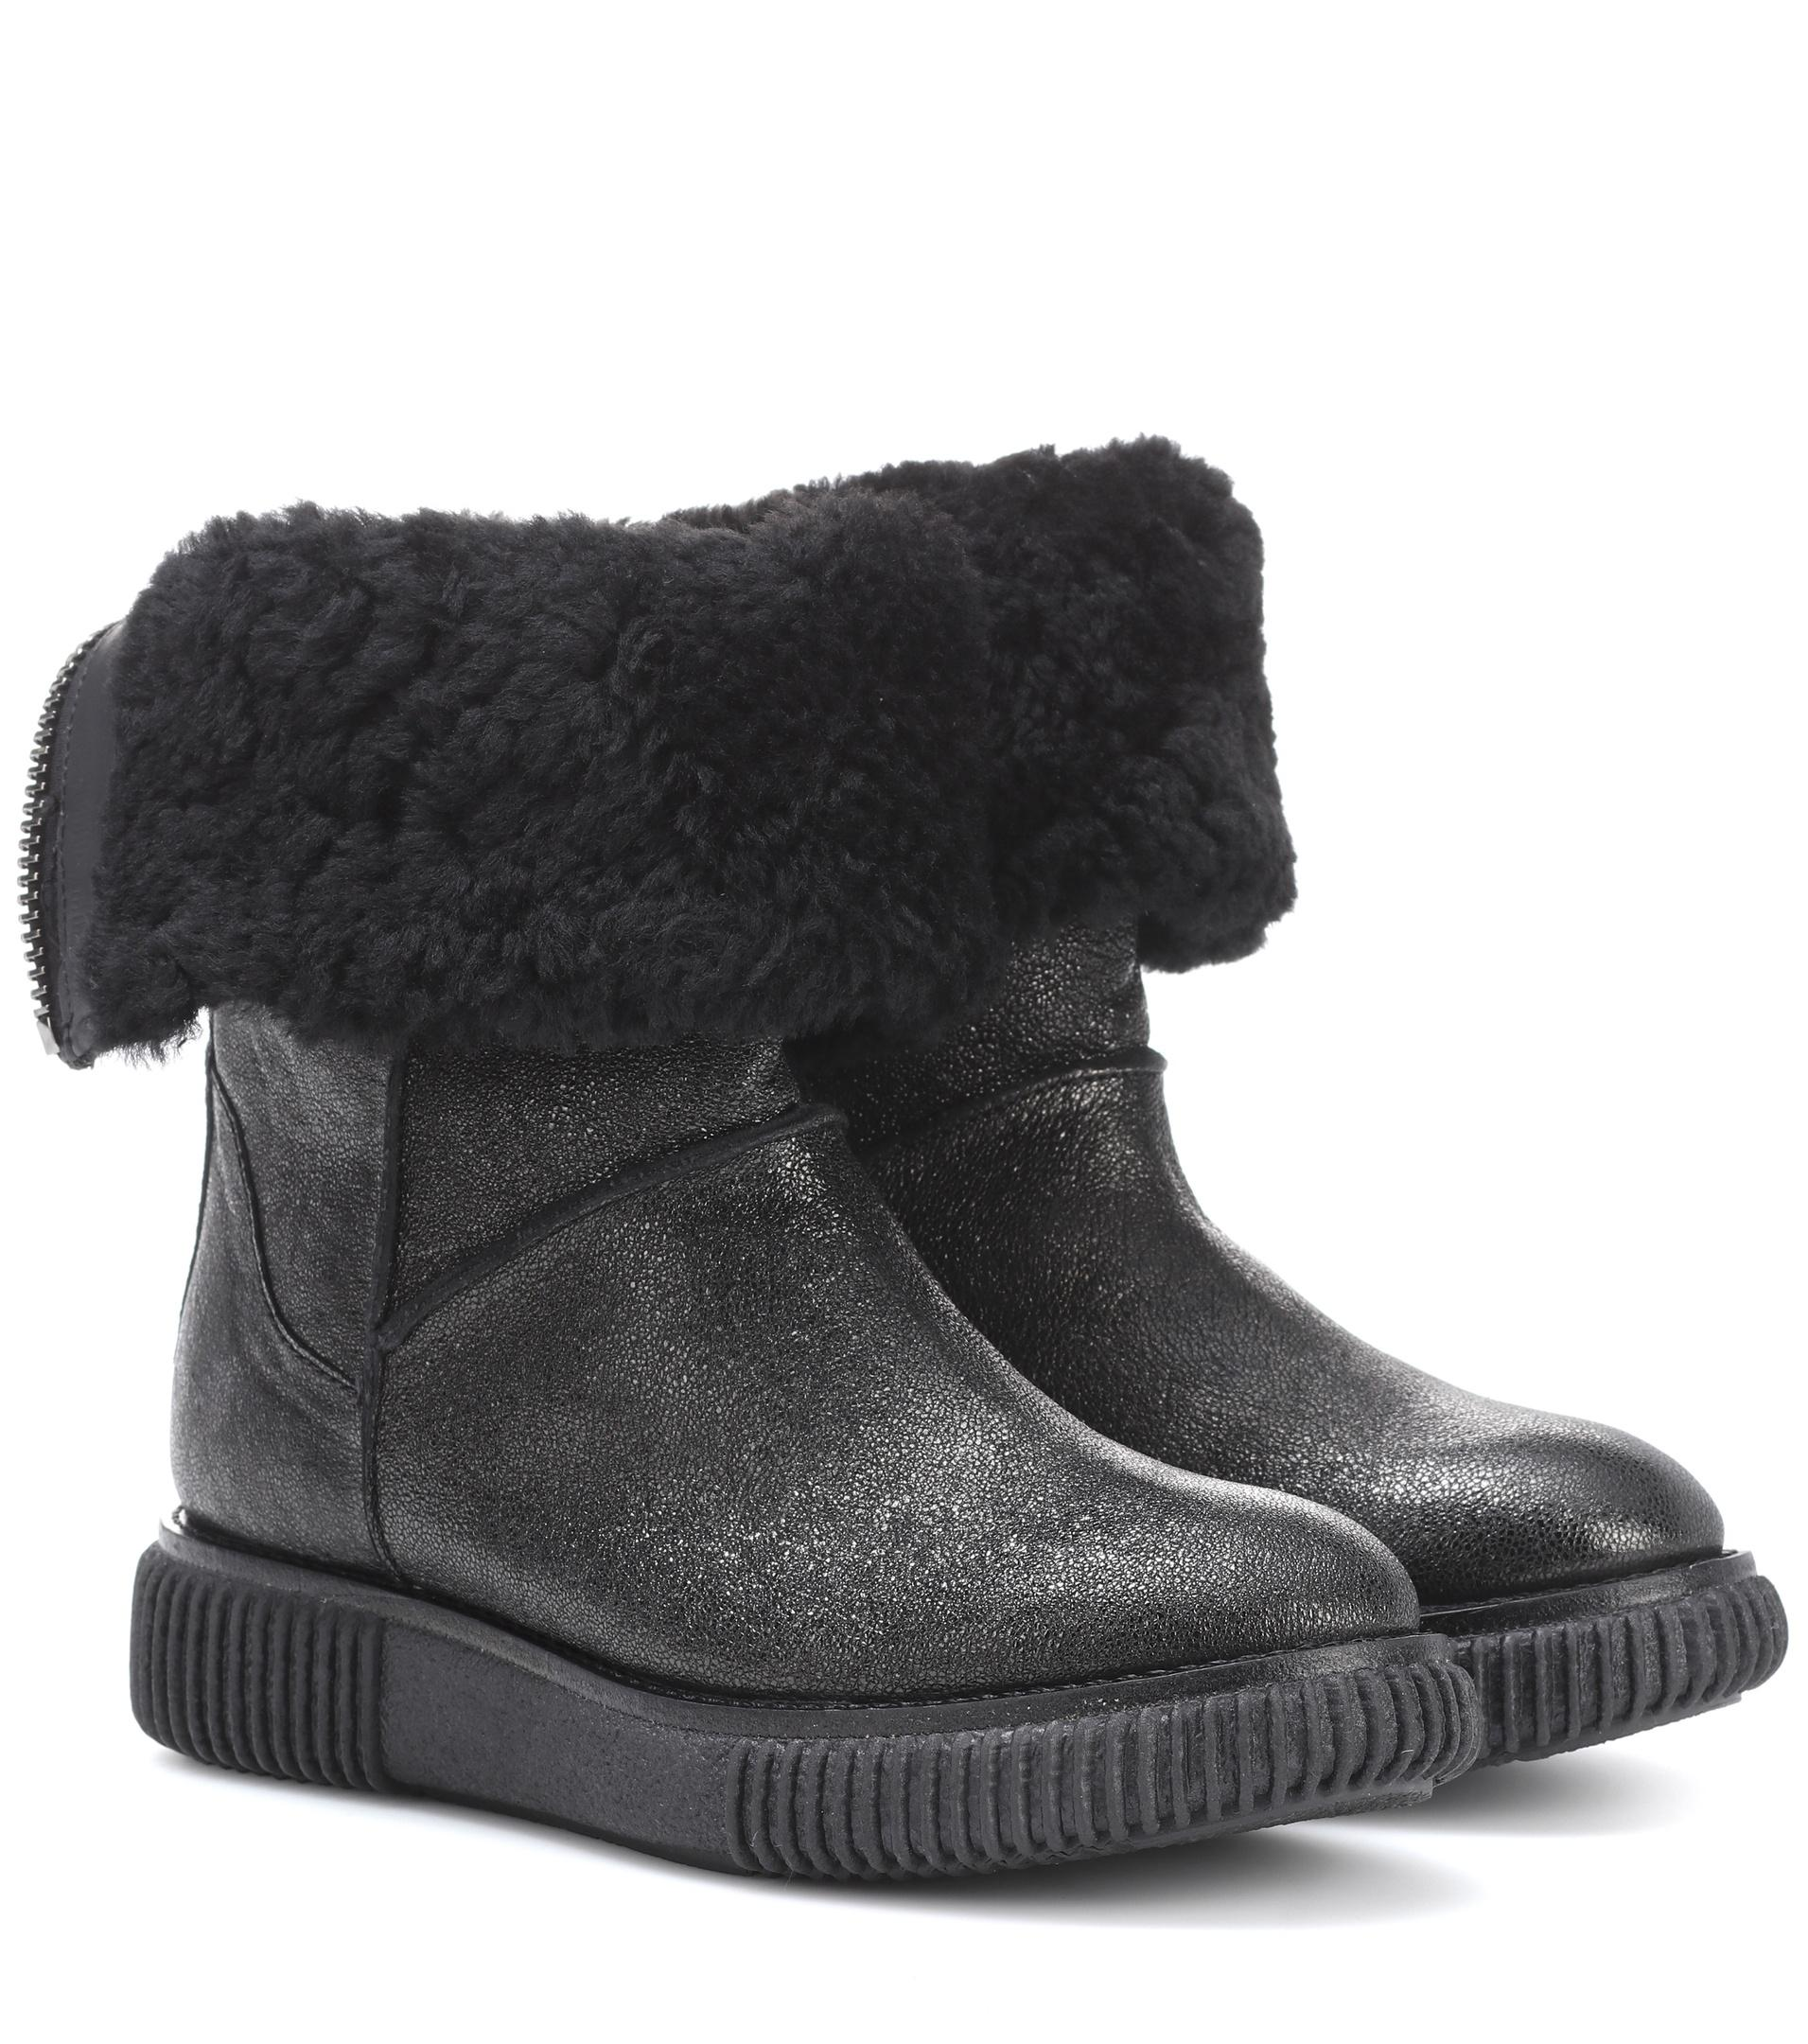 9ba79ea8bb42 Lyst - Moncler New Christine Fur-lined Leather Ankle Boots in Black